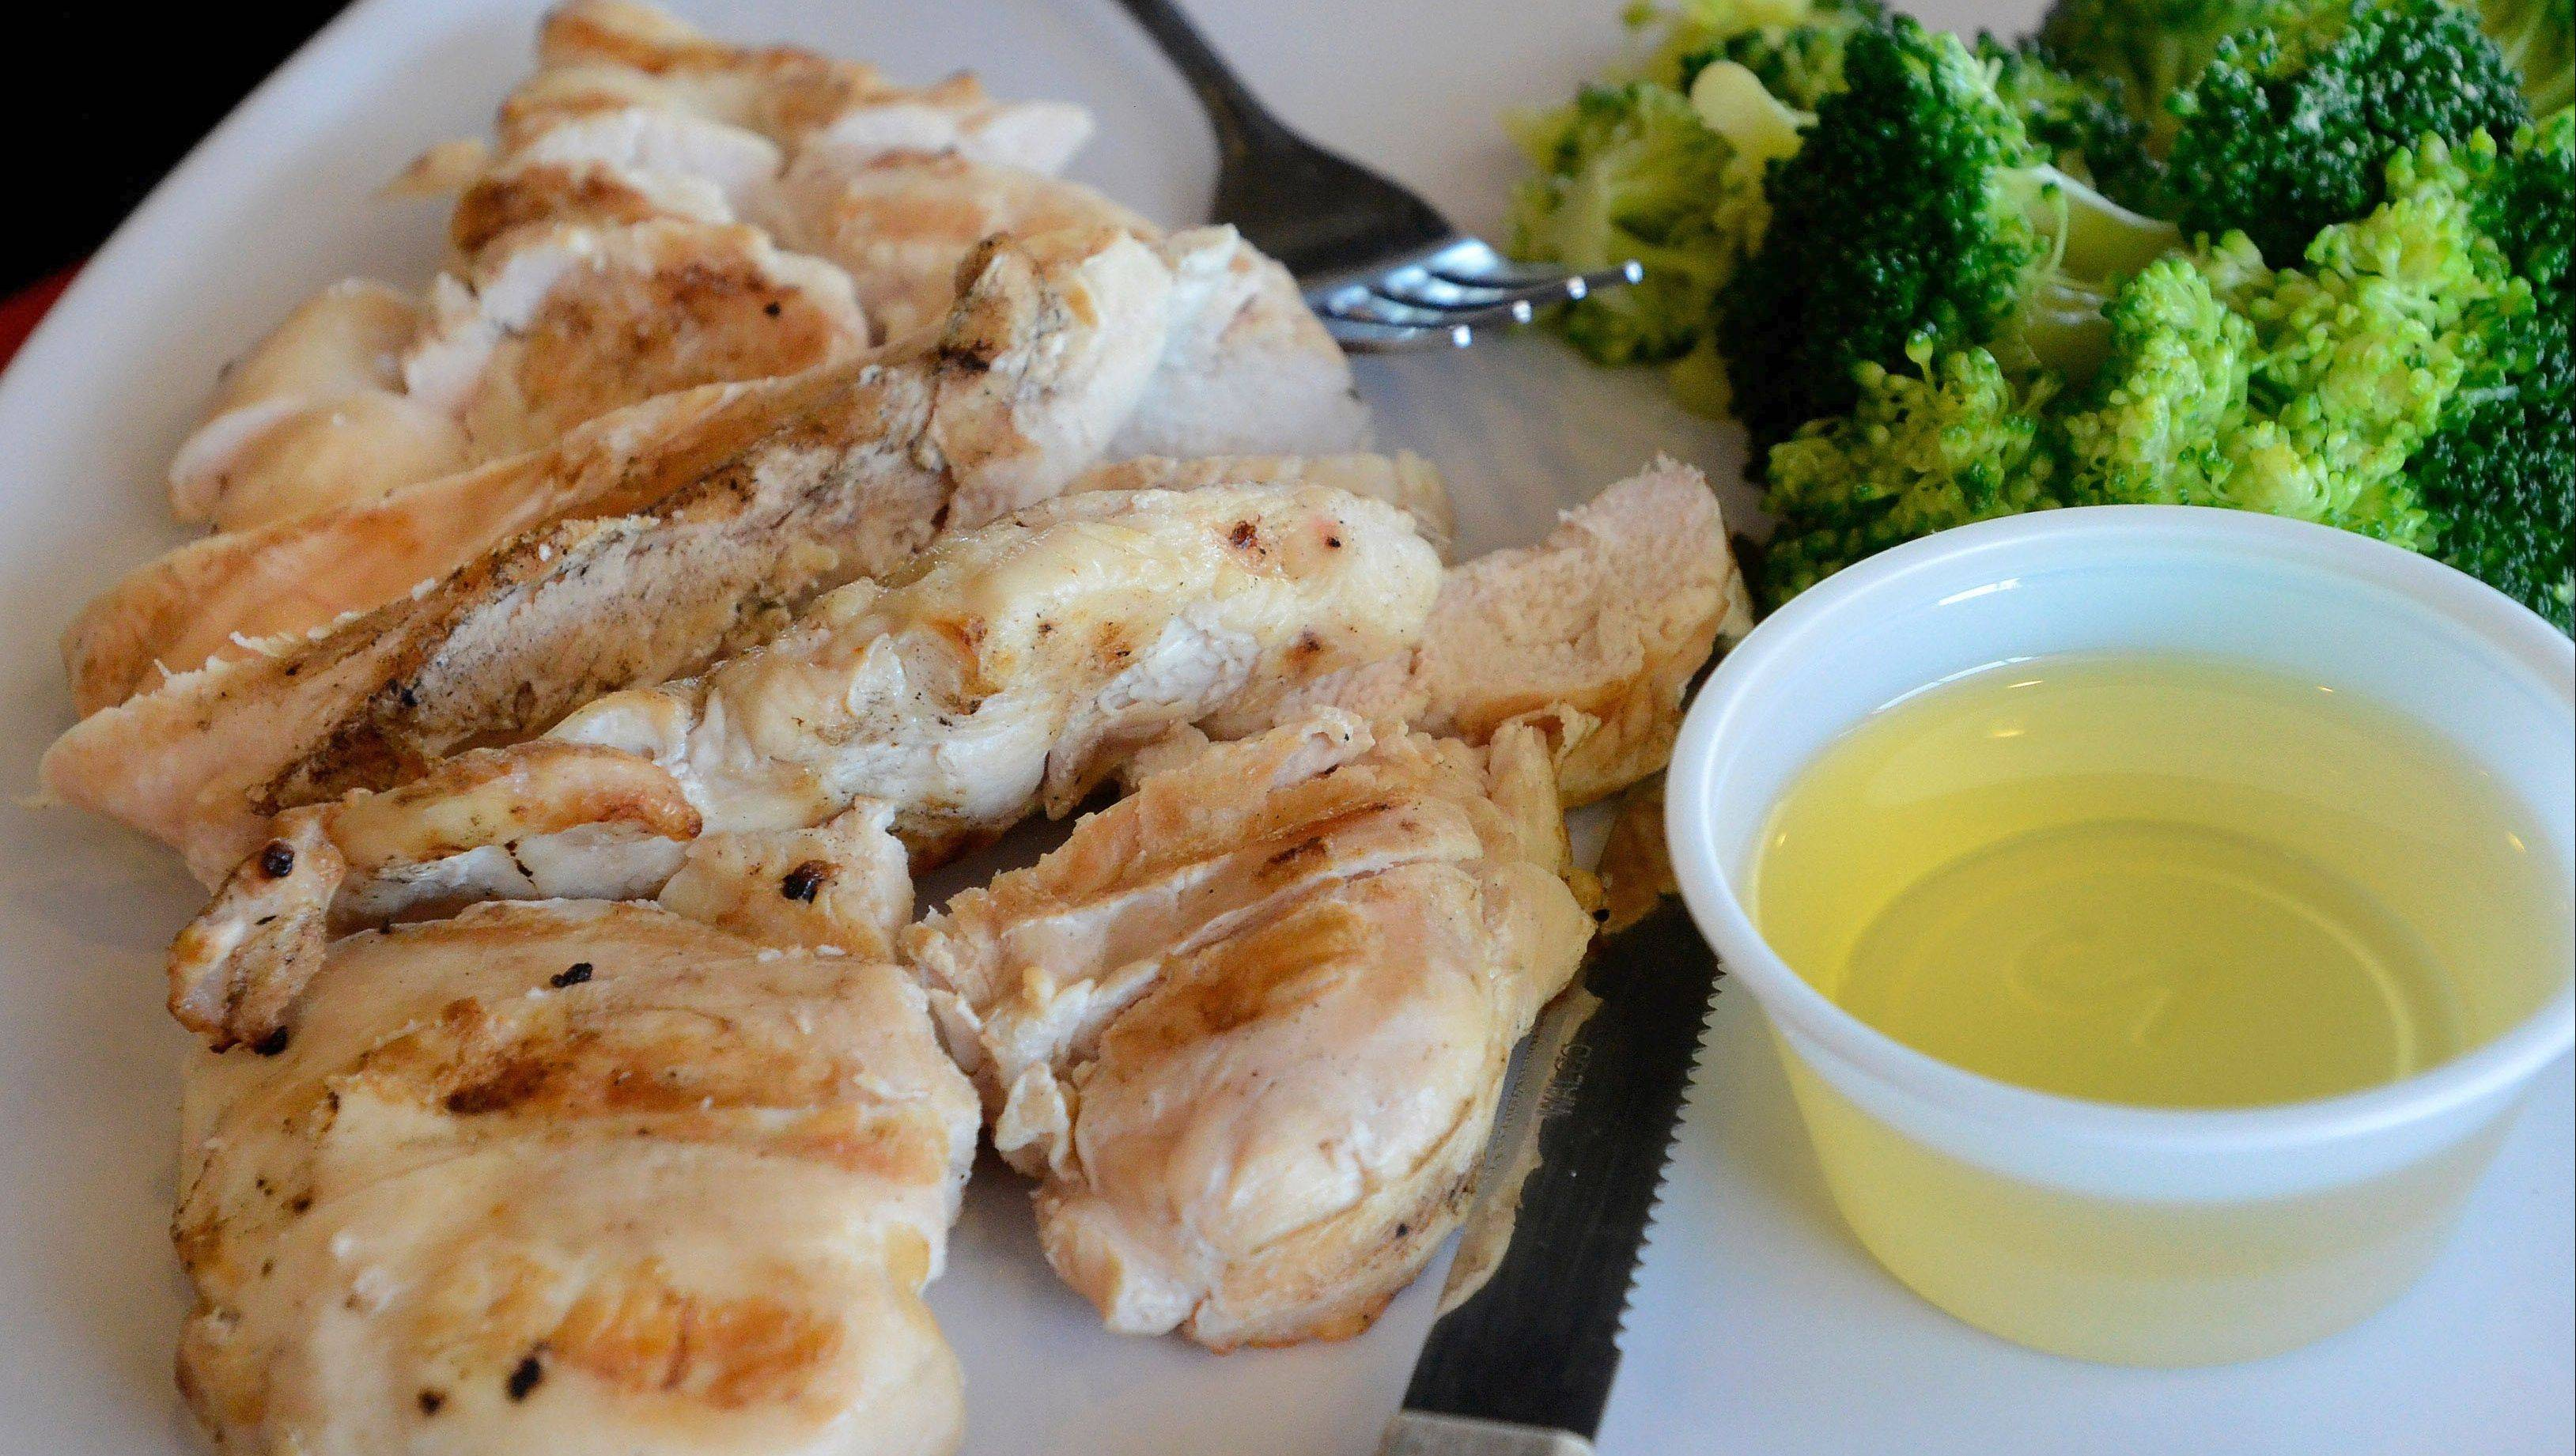 Muscle Maker Grill gave contenstants gift certificates to choose from among the healthy foods on its menu. Daily Herald participant Melynda Findlay ordered chicken, broccoli and olive oil.